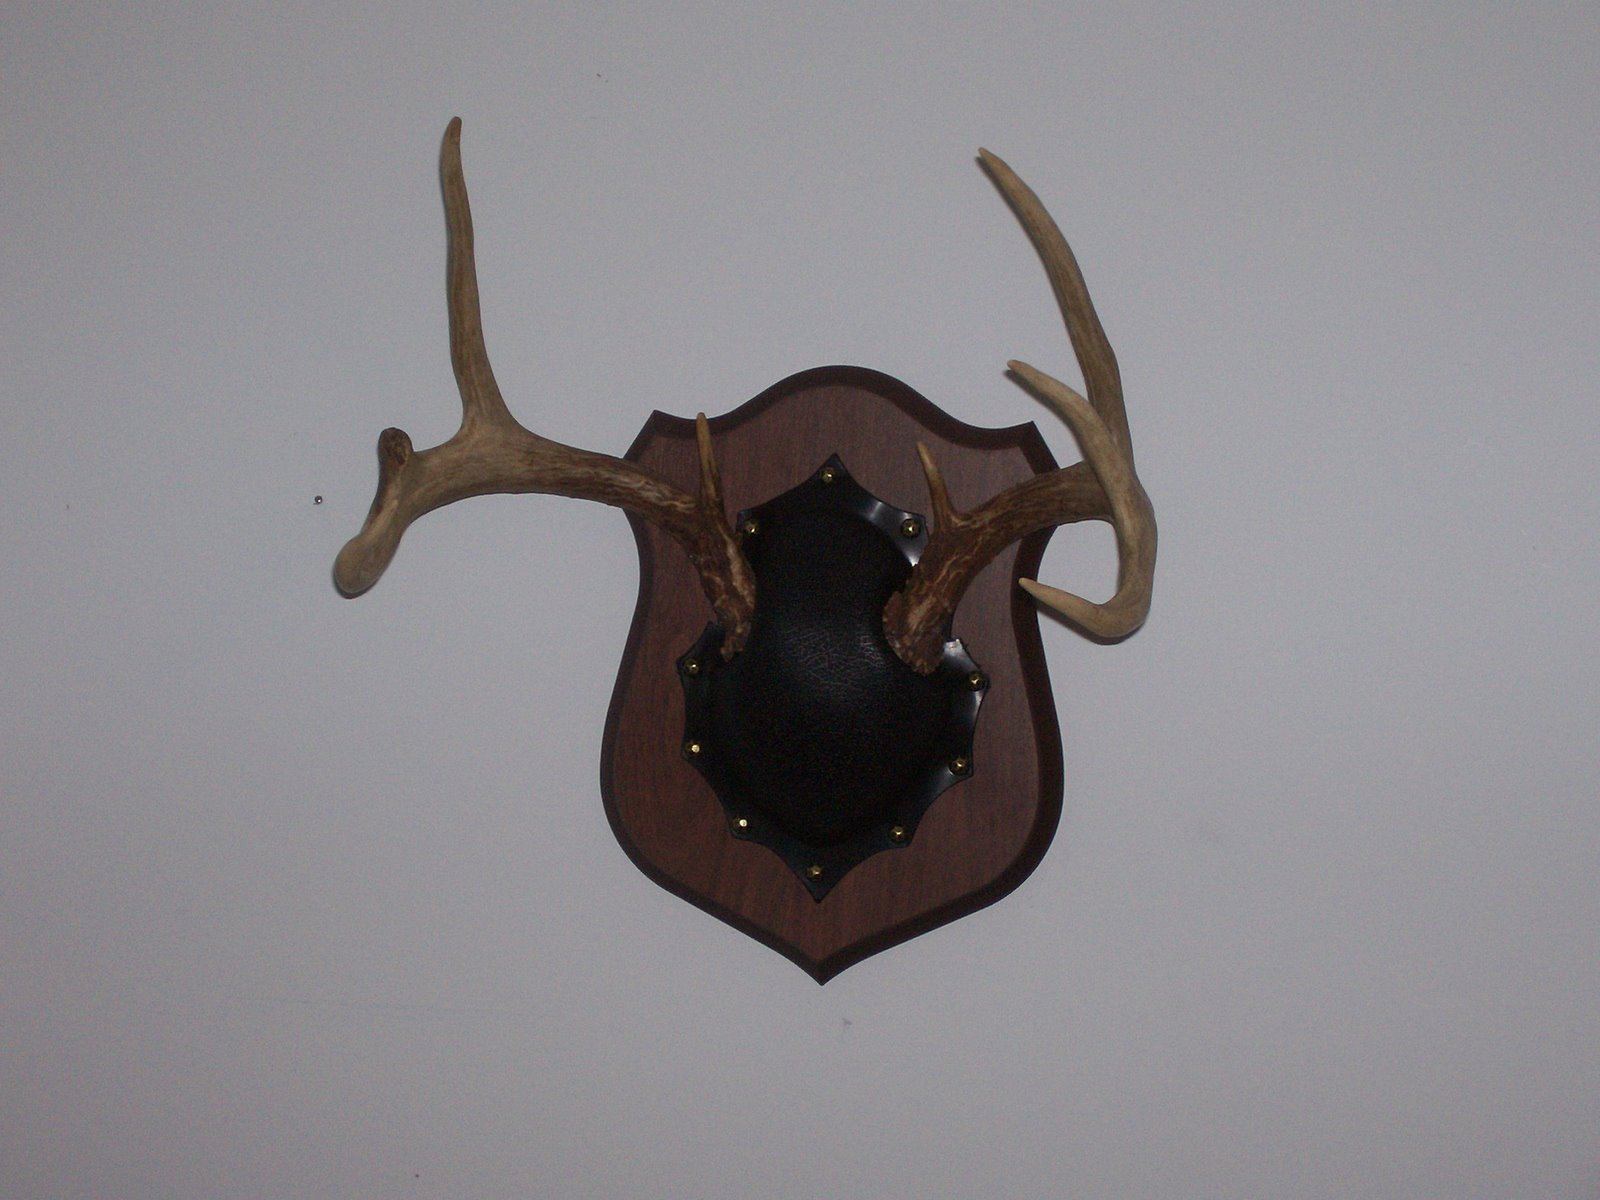 An emergent agrarian mounting deer antlers